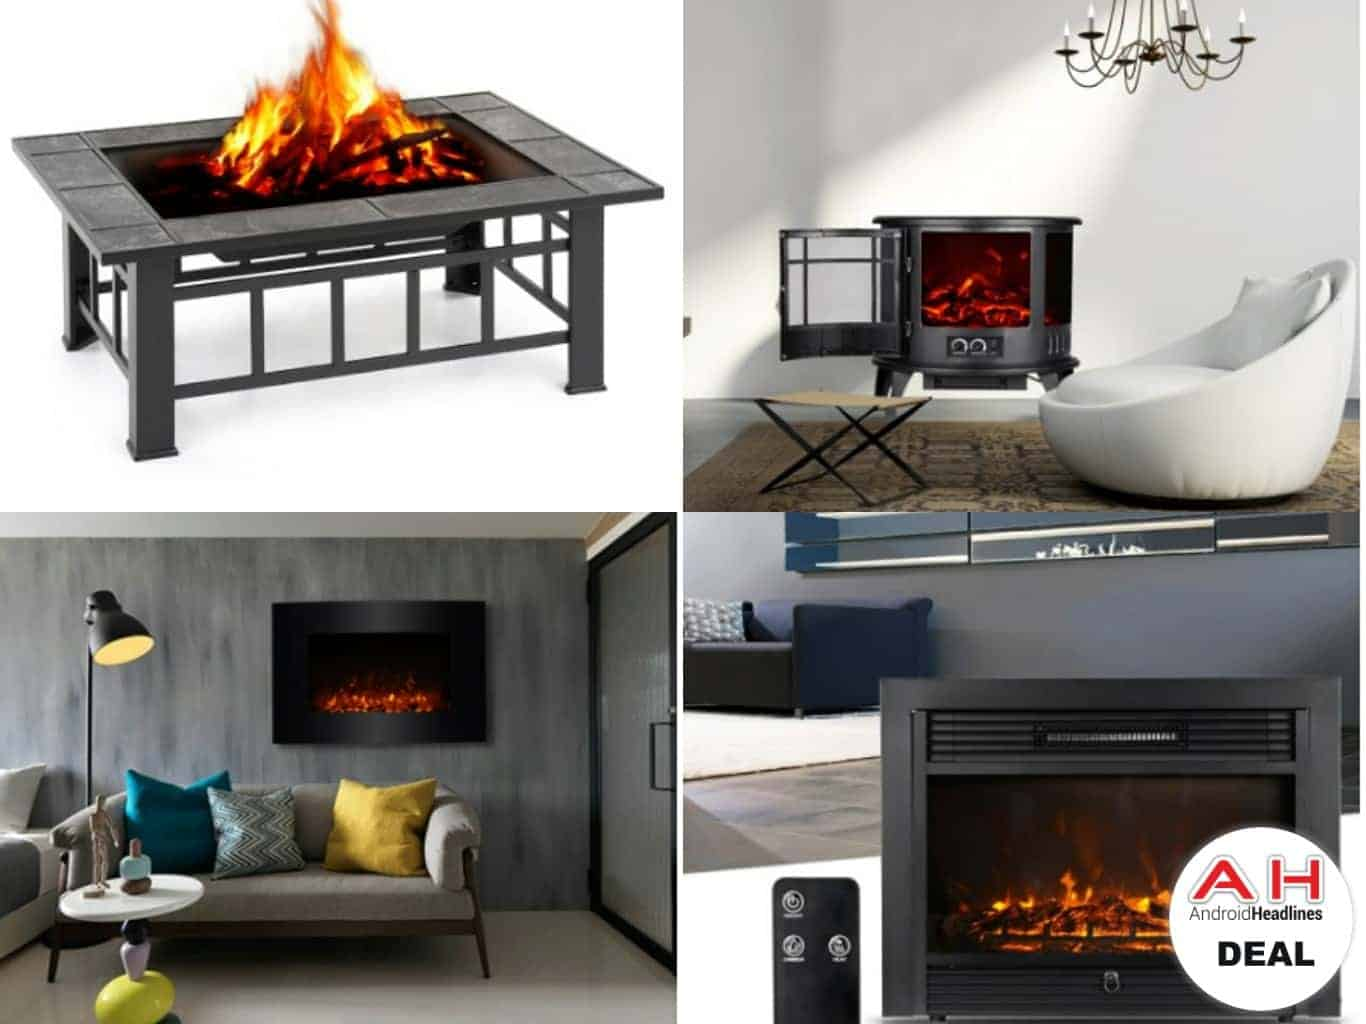 fireplace electric on ah fire androidheadlines com pit fireplaces deal tomtop backyard sale are